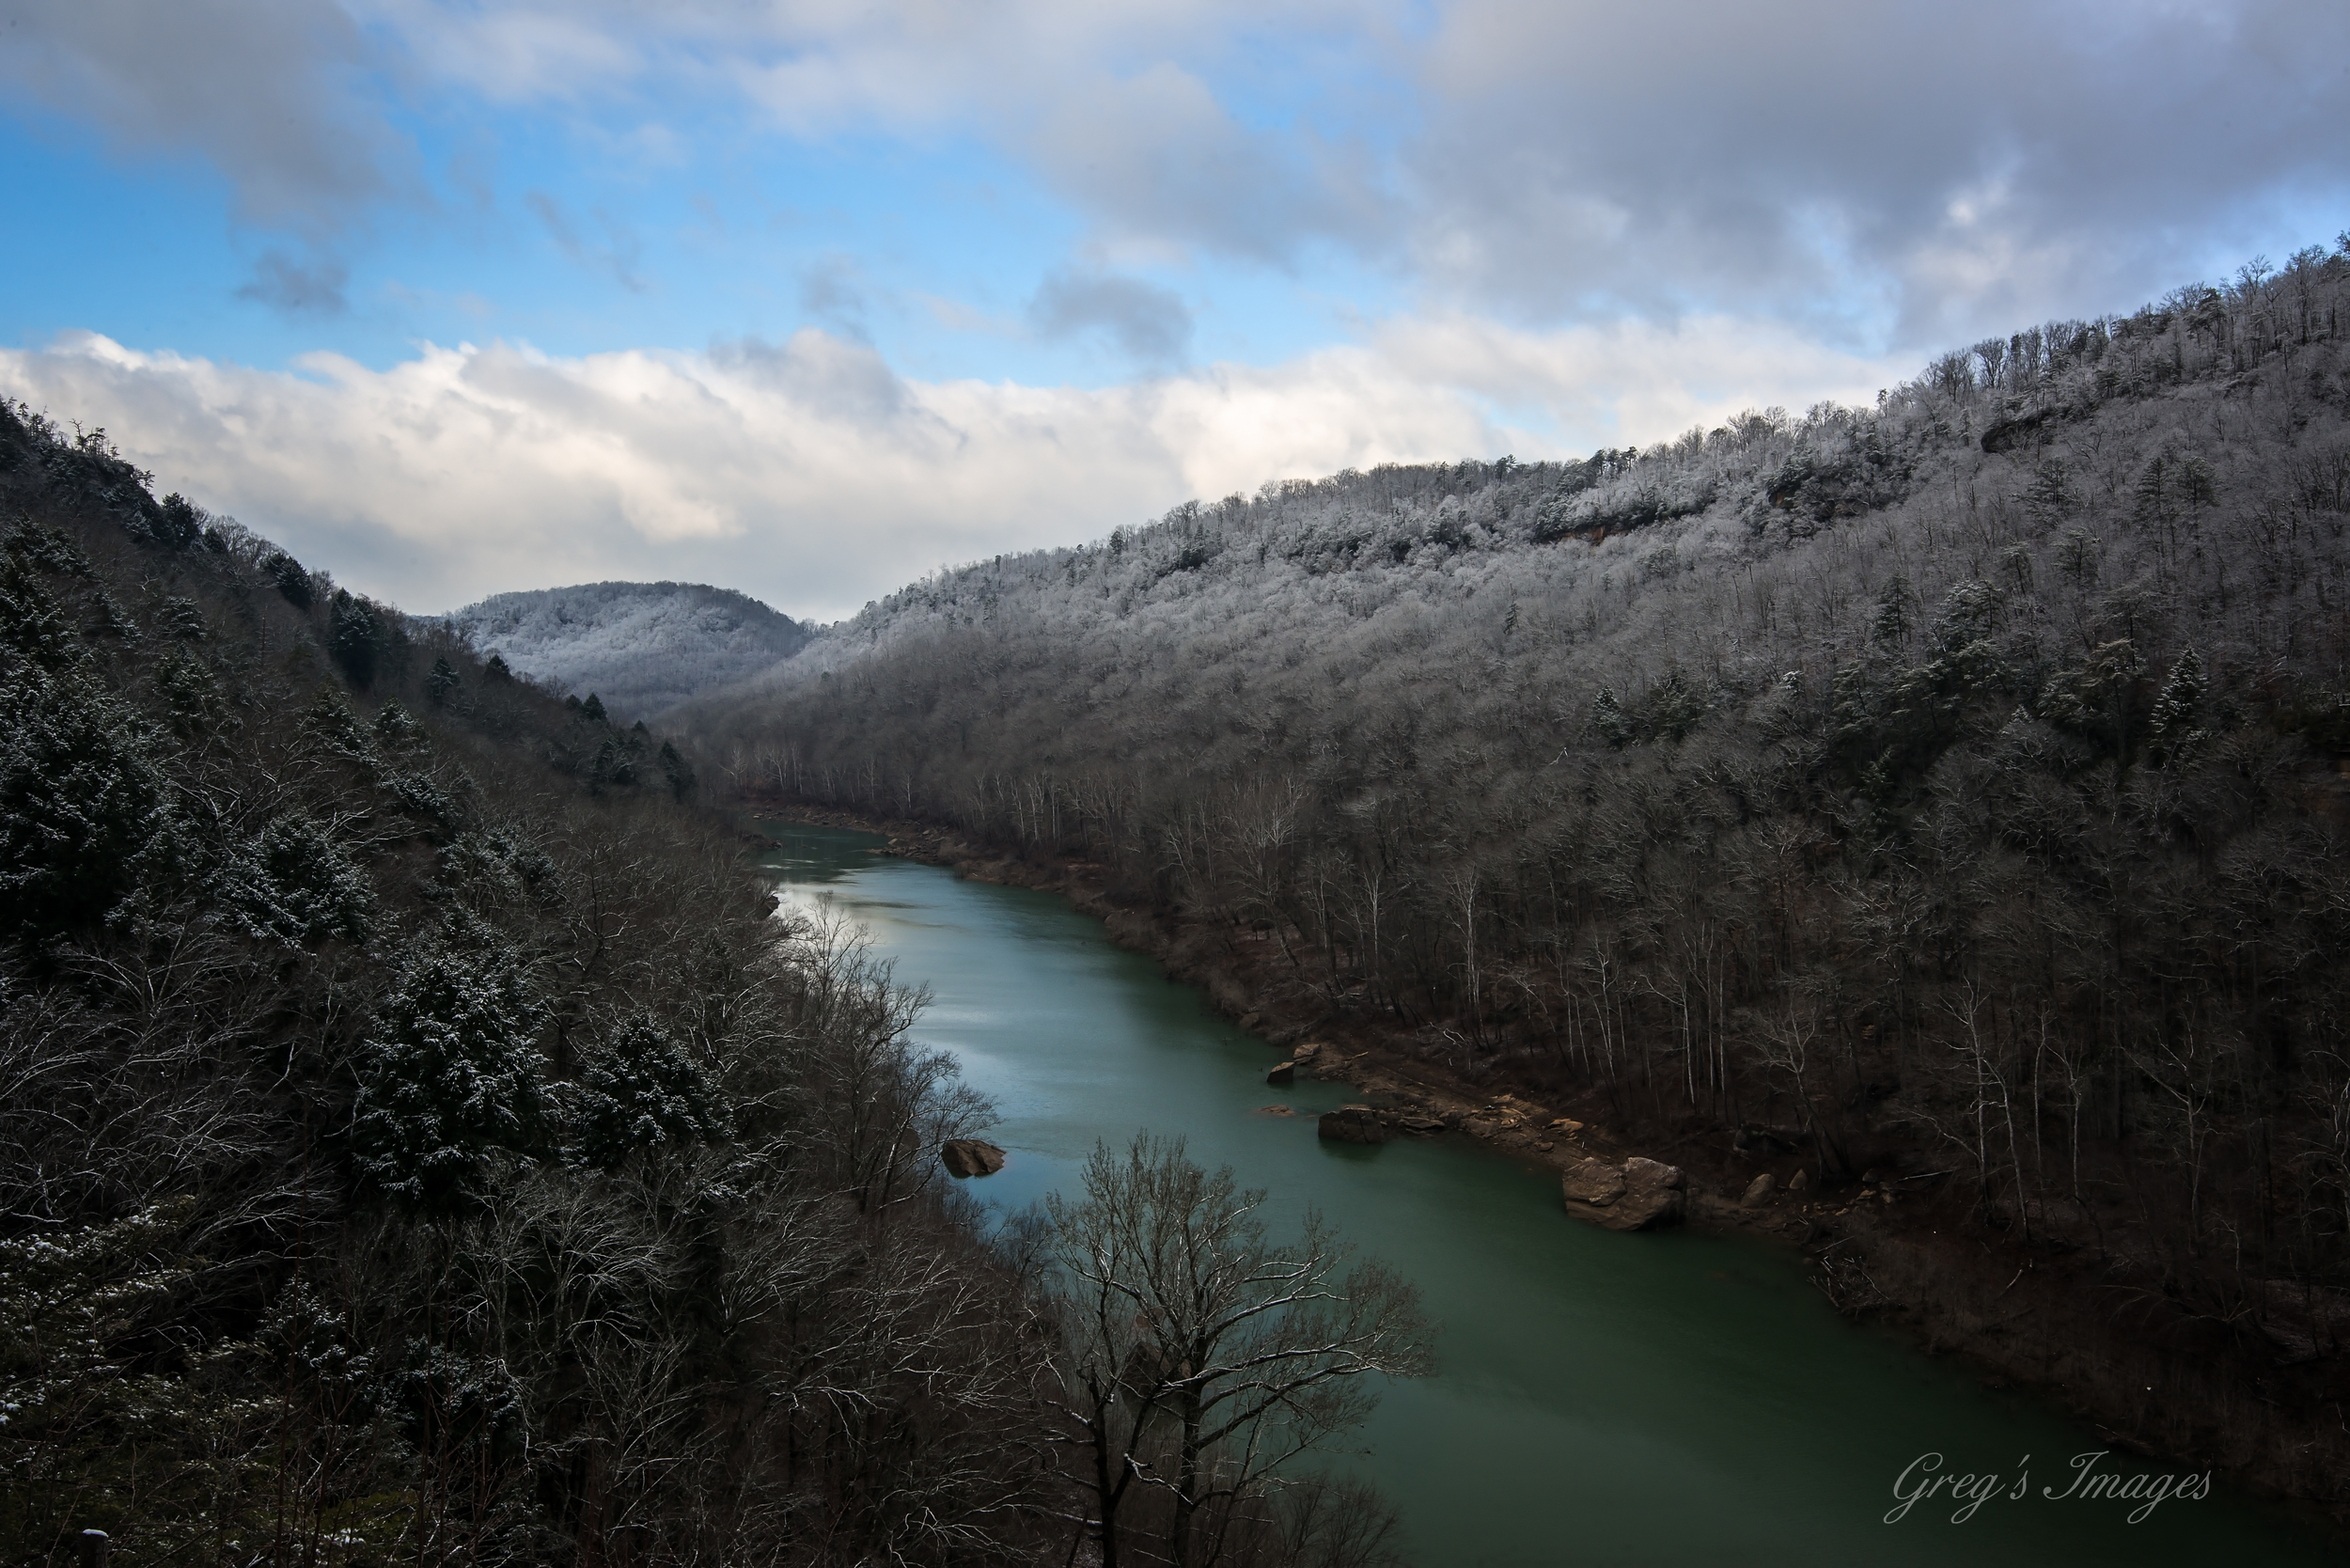 Snow-capped ridges along the South Fork River as seen from Yahoo Overlook.